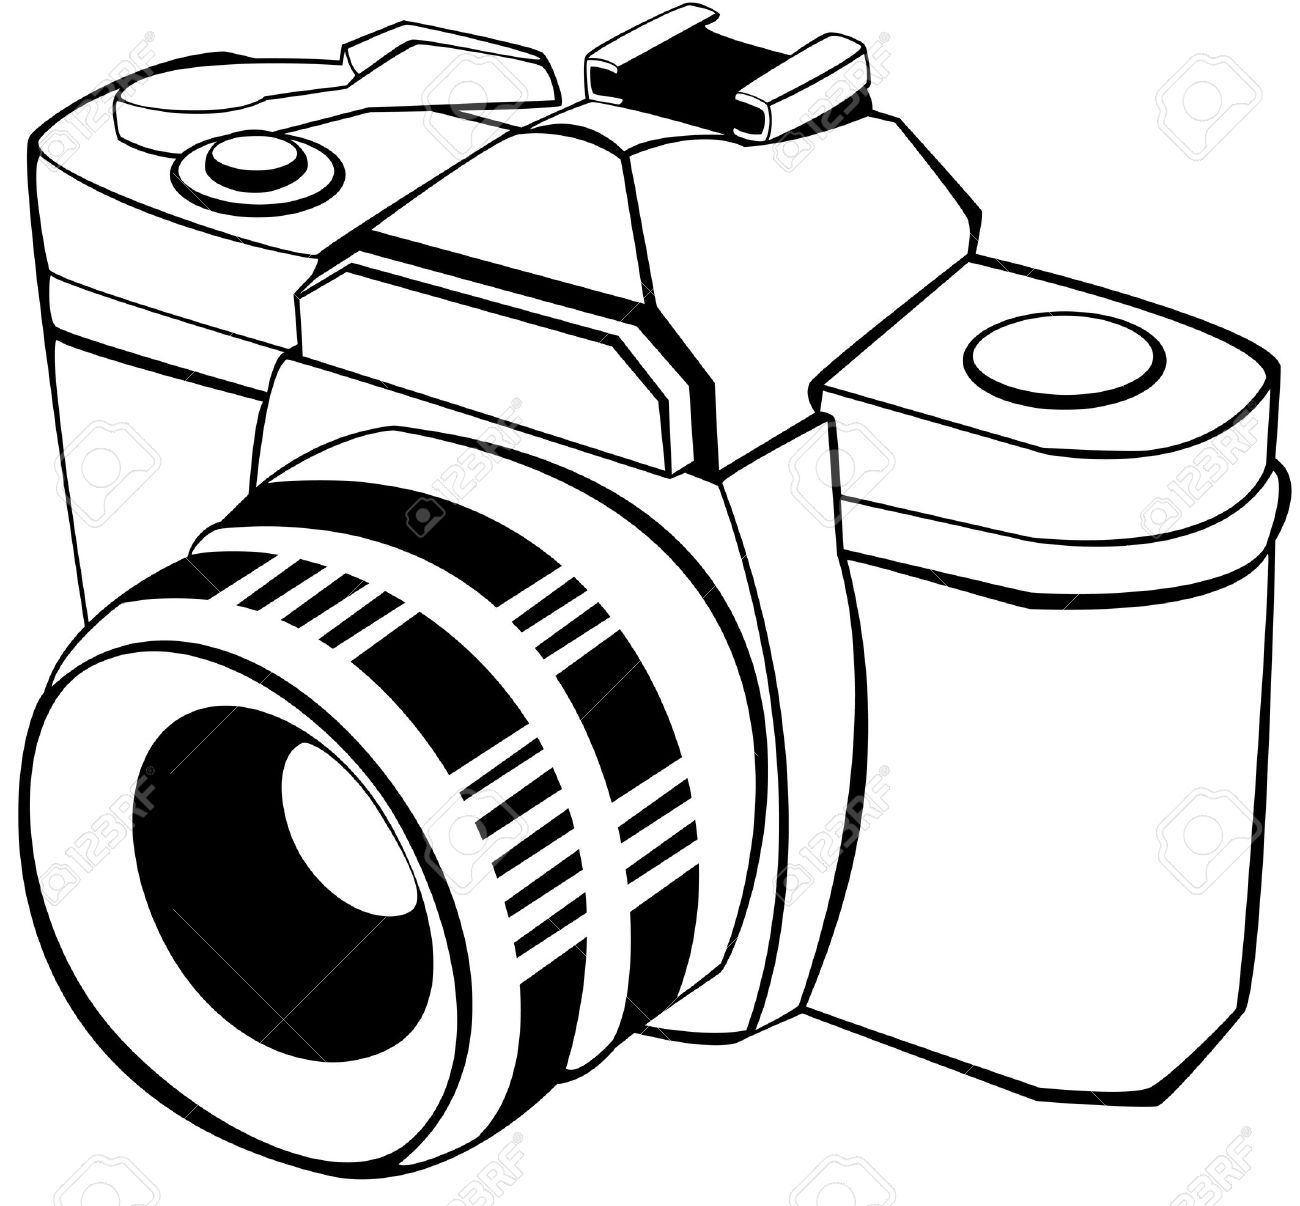 1300x1206 Vector Draw Of An Analogic Reflex Royalty Free Cliparts, Vectors